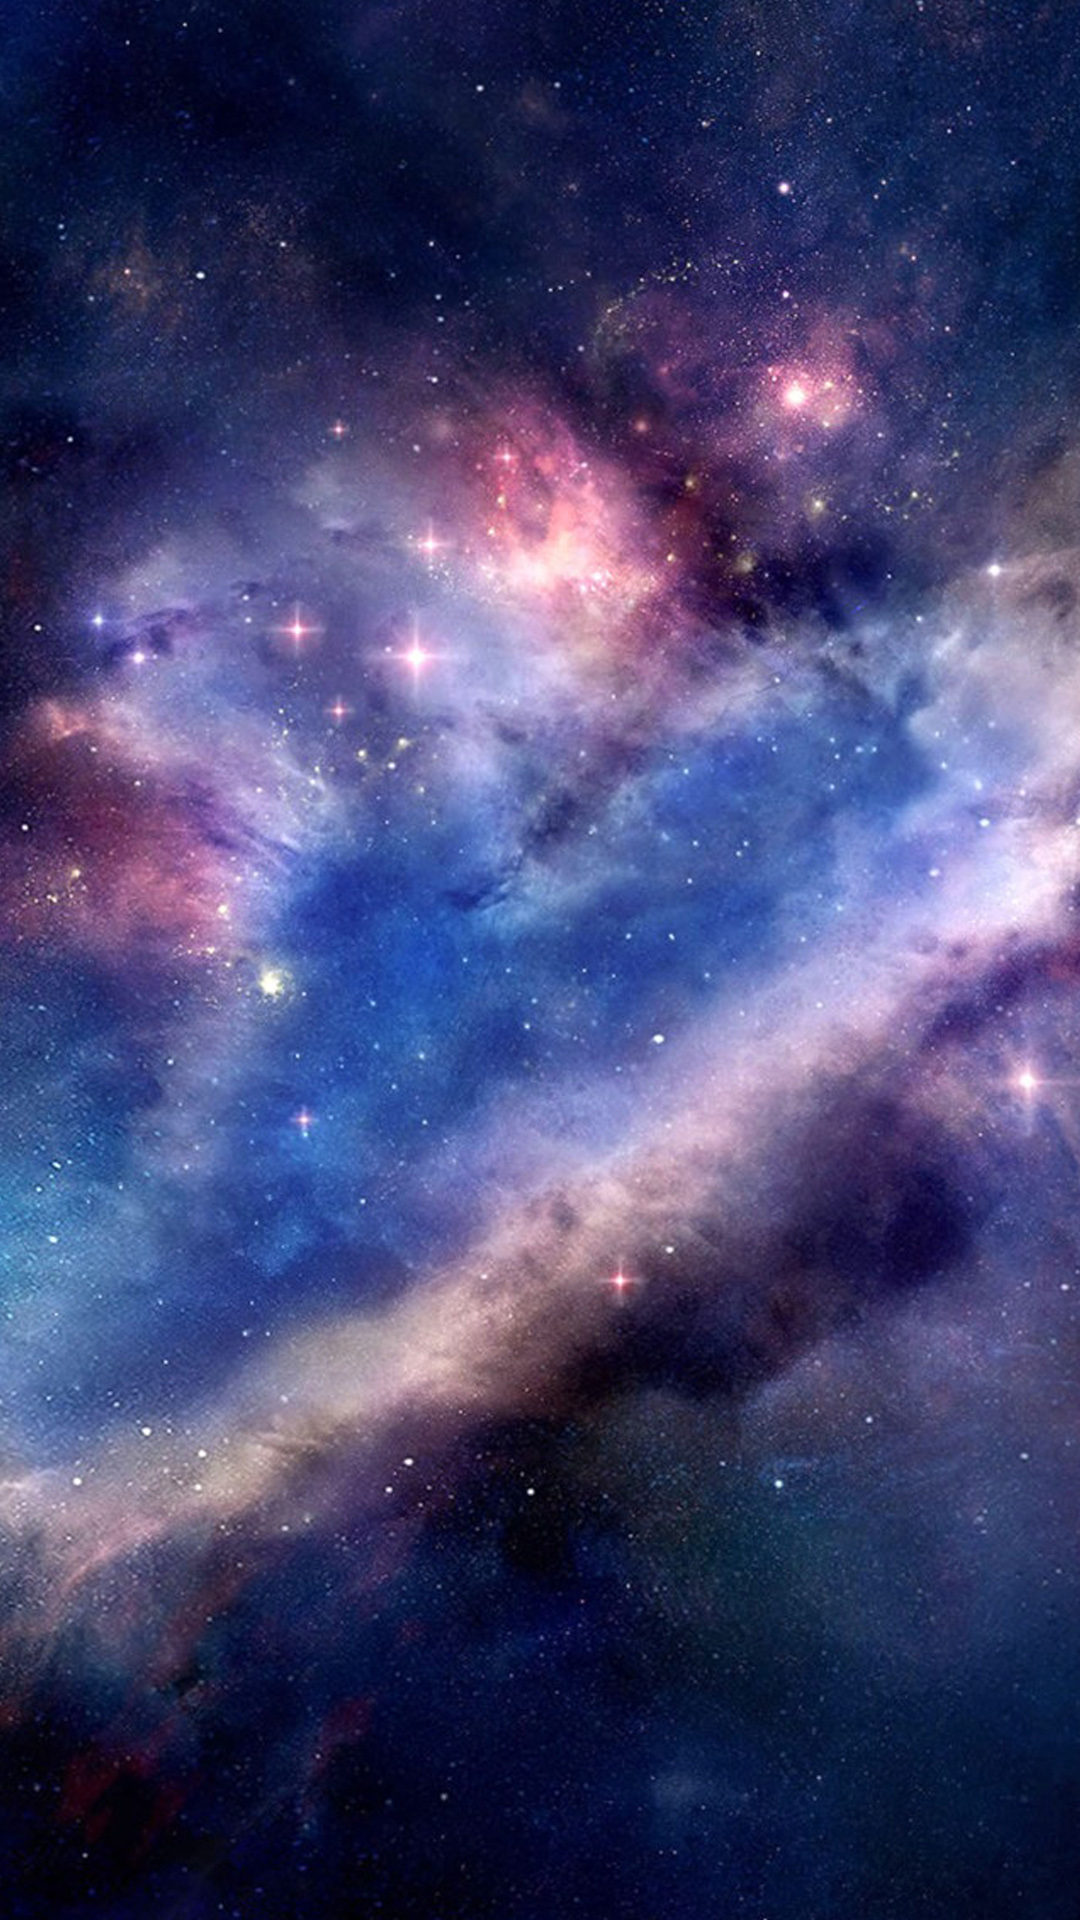 Space Galaxy S Wallpapers Samsung Galaxy S Wallpapers HD 1080x1920